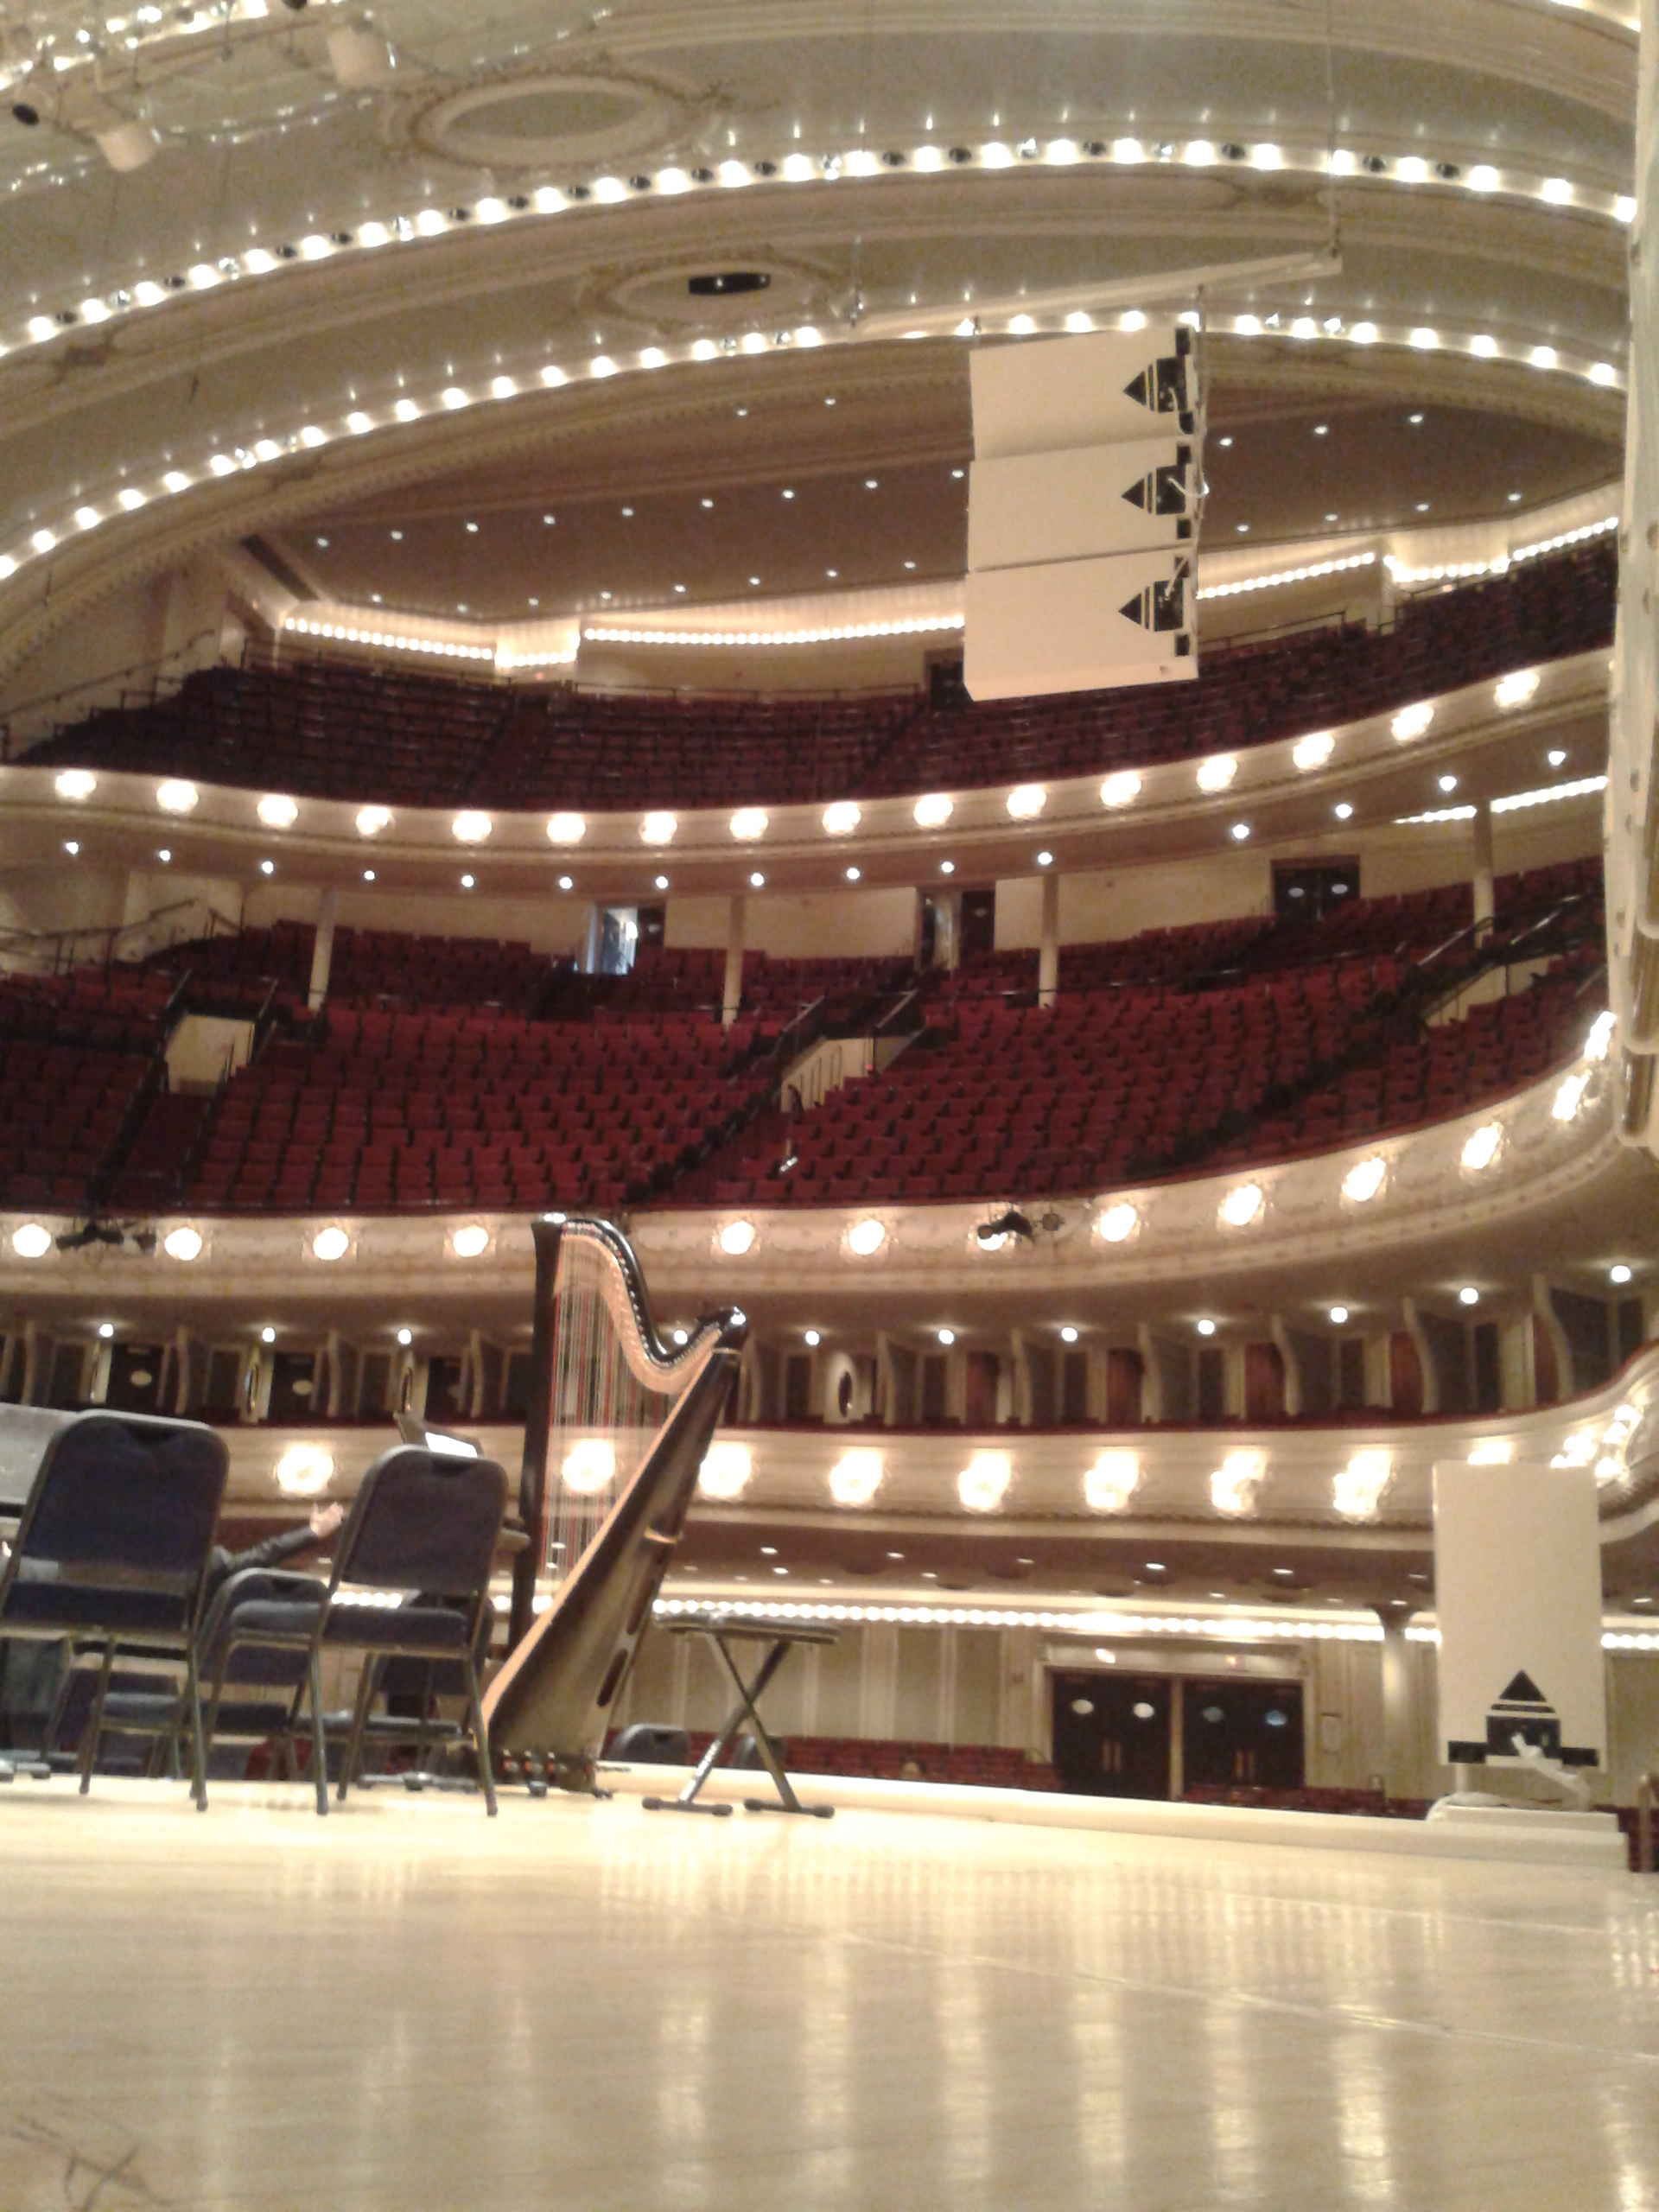 At Symphony Center